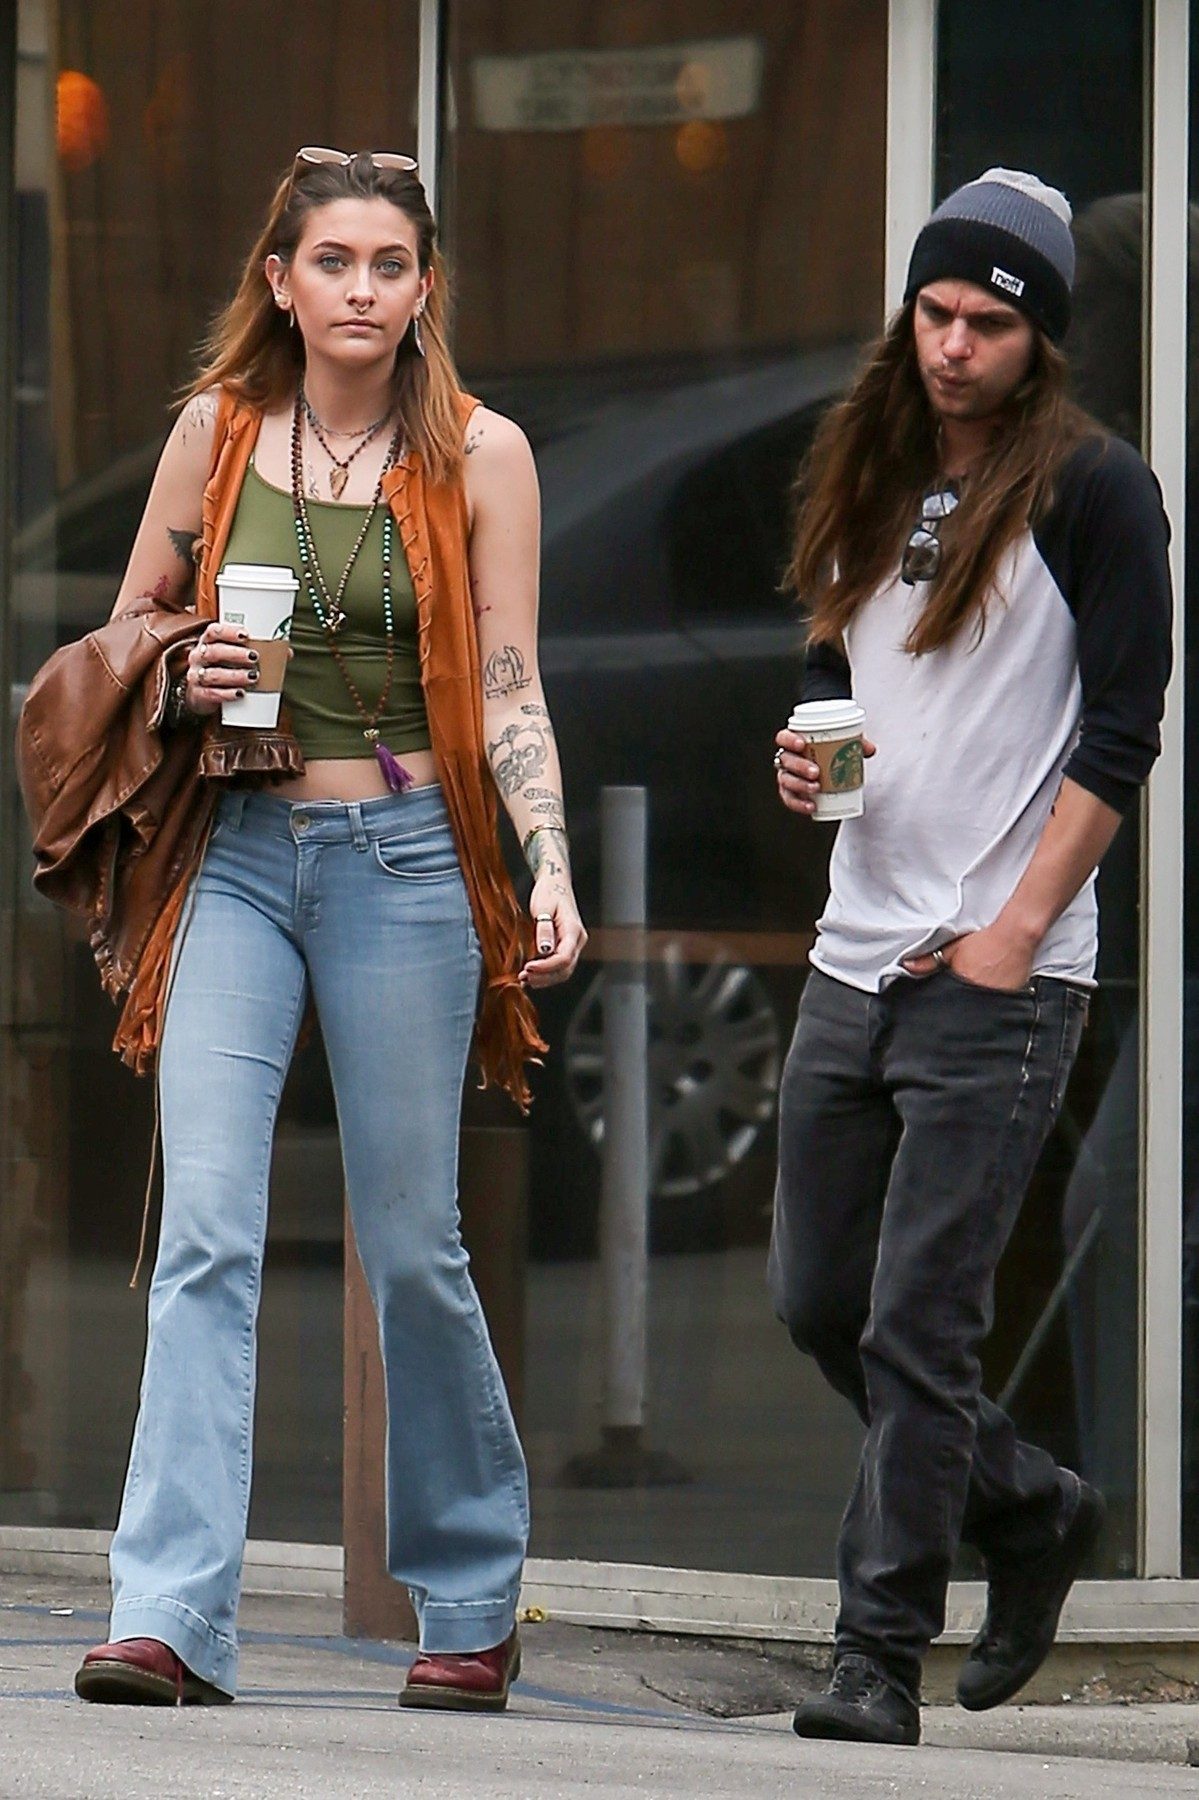 West Hollywood, CA  - *EXCLUSIVE*  - Paris Jackson looks to be in good spirits as she cozies up to new boyfriend Gabriel Glenn on a Starbucks coffee run with a friend on Sunset Strip in West Hollywood. The lovely actress shows off her new Led Zeppelin tattoo as she returns to her Jeep with a smile.  Pictured: Paris Jackson, Gabriel Glenn    *UK Clients - Pictures Containing Children Please Pixelate Face Prior To Publication*,Image: 411707494, License: Rights-managed, Restrictions: , Model Release: no, Credit line: BACKGRID / Backgrid USA / Profimedia